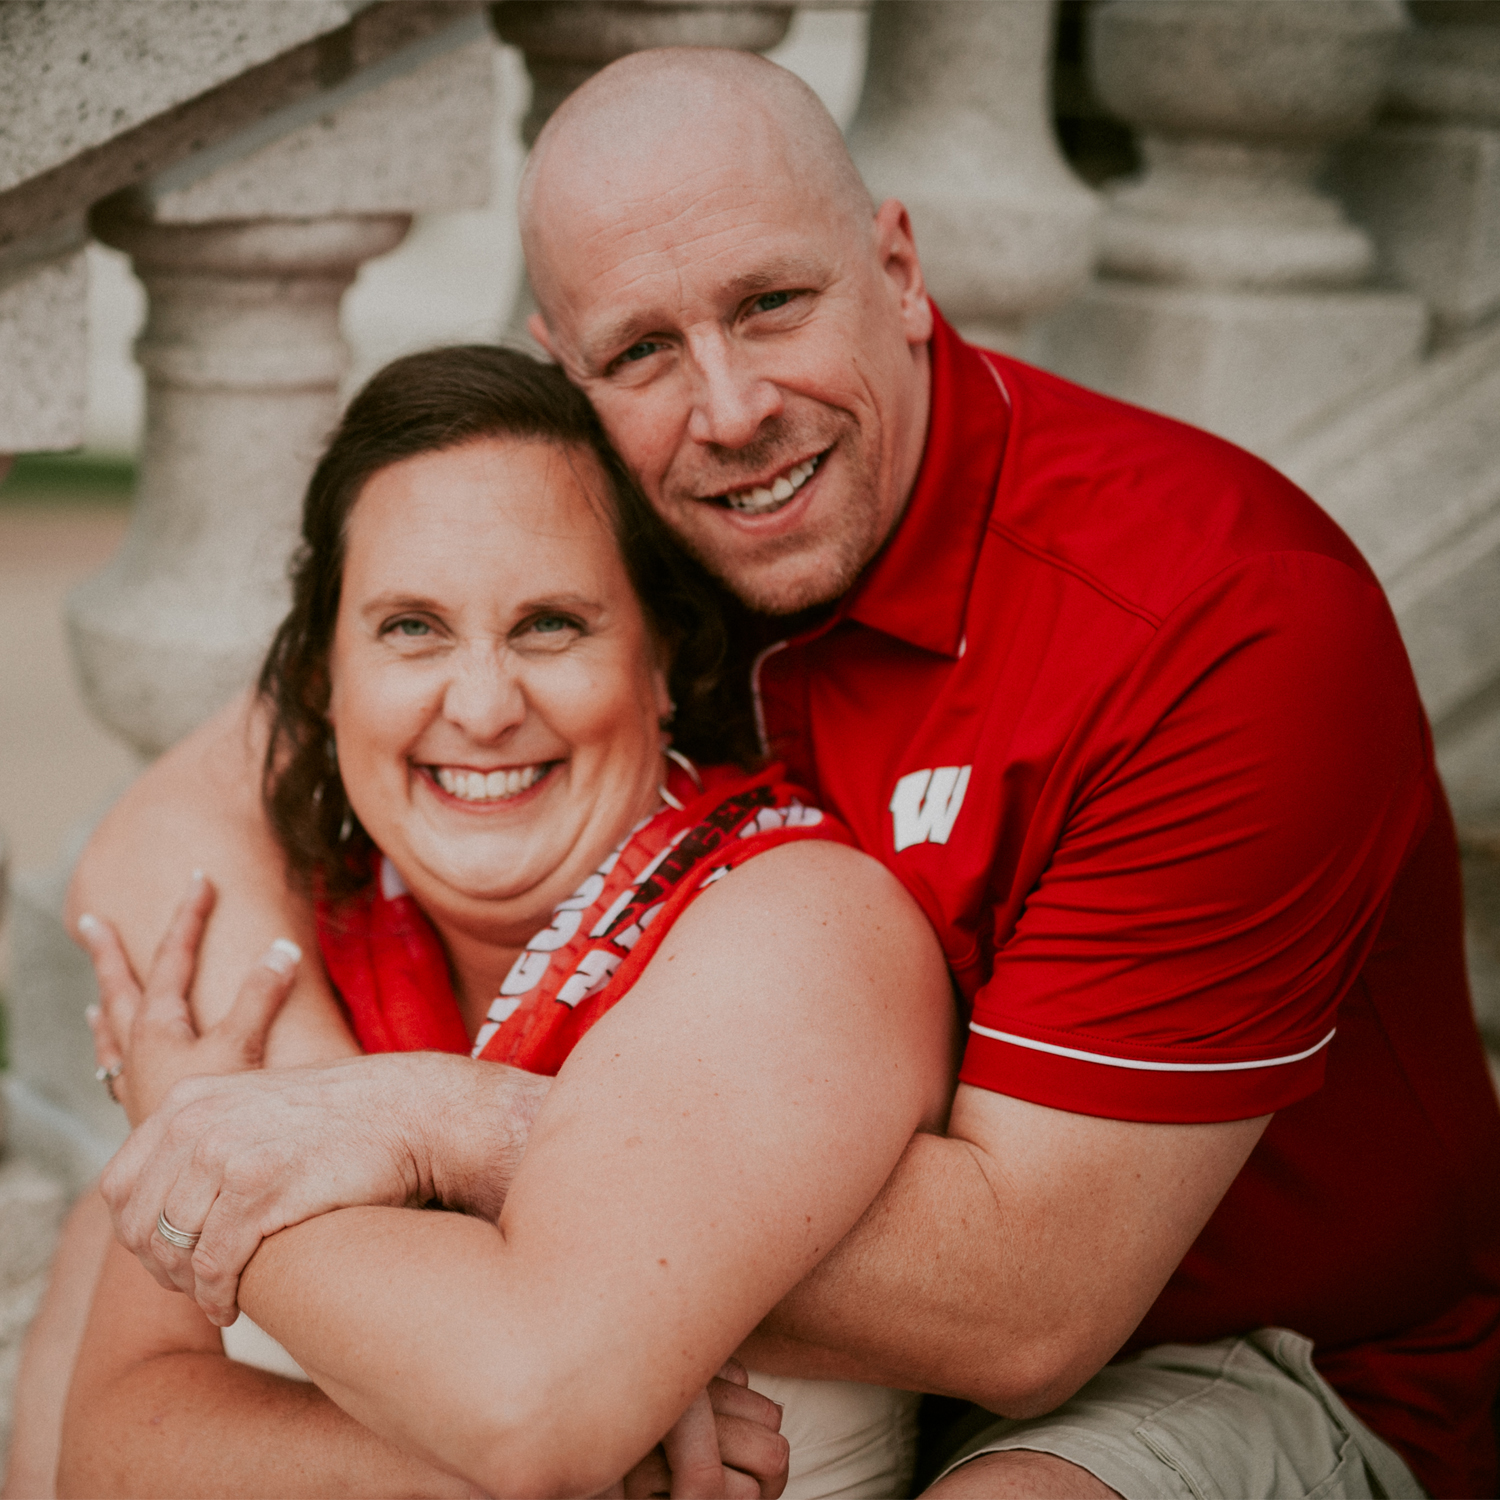 Hello! We're Jen and Andrew, a fun-loving, full of life couple living in an amazing city, Madison, Wisconsin!